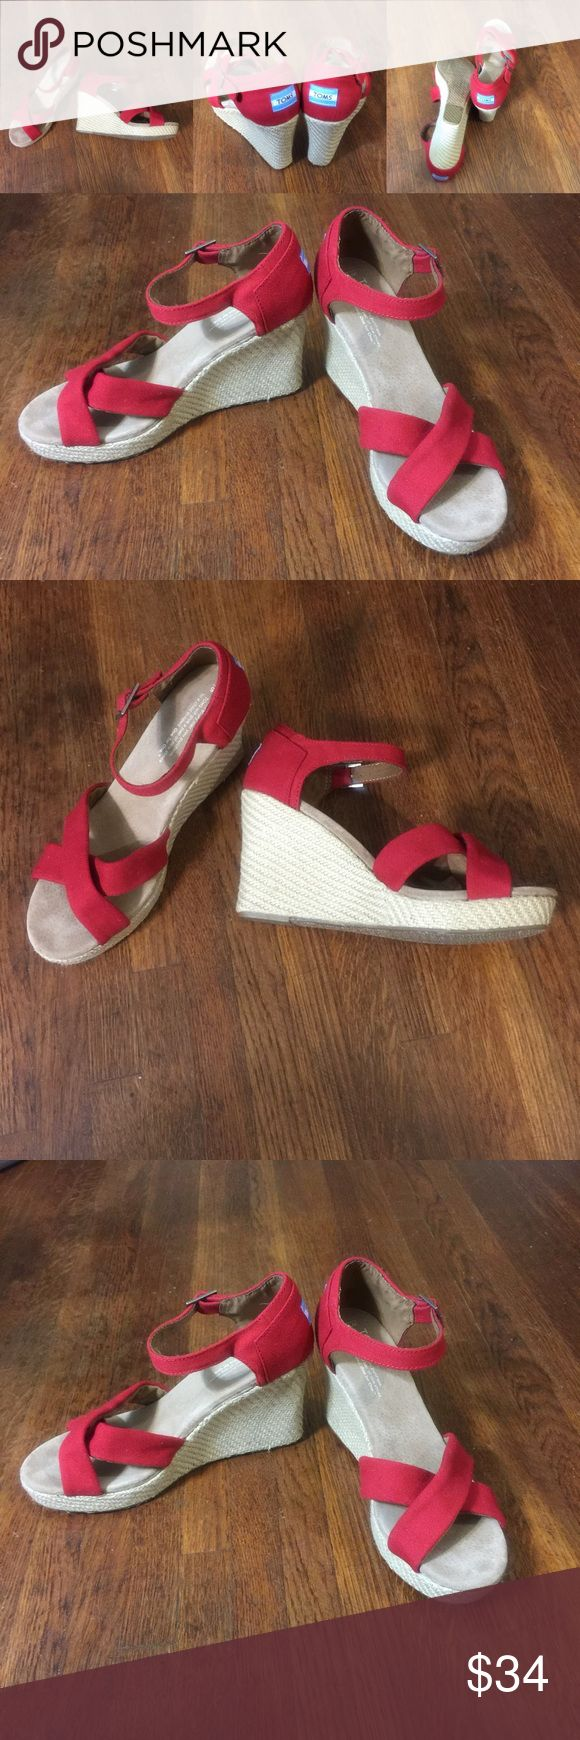 Toms red canvas open toe wedge espadrille sandals ❤️Very good condition ❤️super clean ❤️size 9.5 W❤️ Toms Shoes Wedges